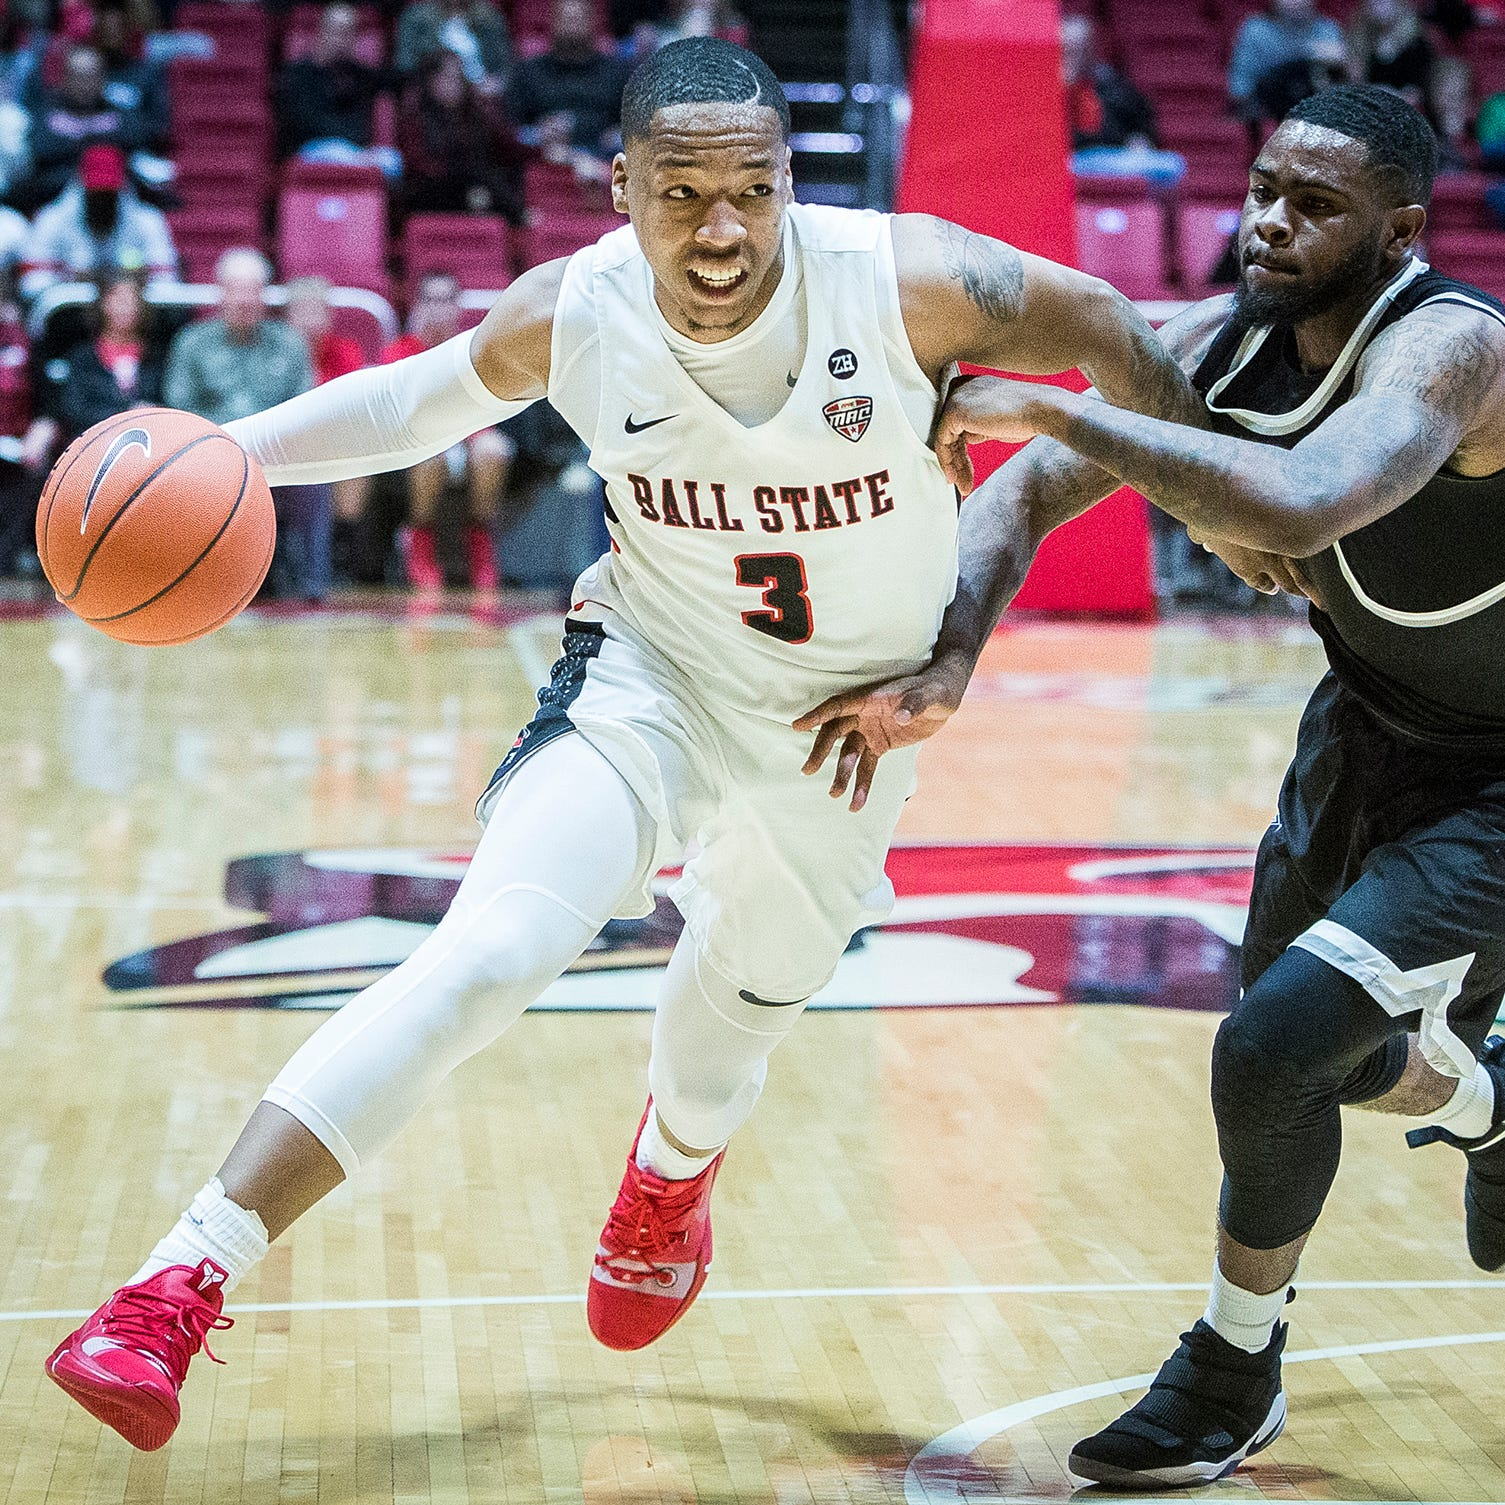 Ball State basketball at Purdue: How to watch, listen, spread